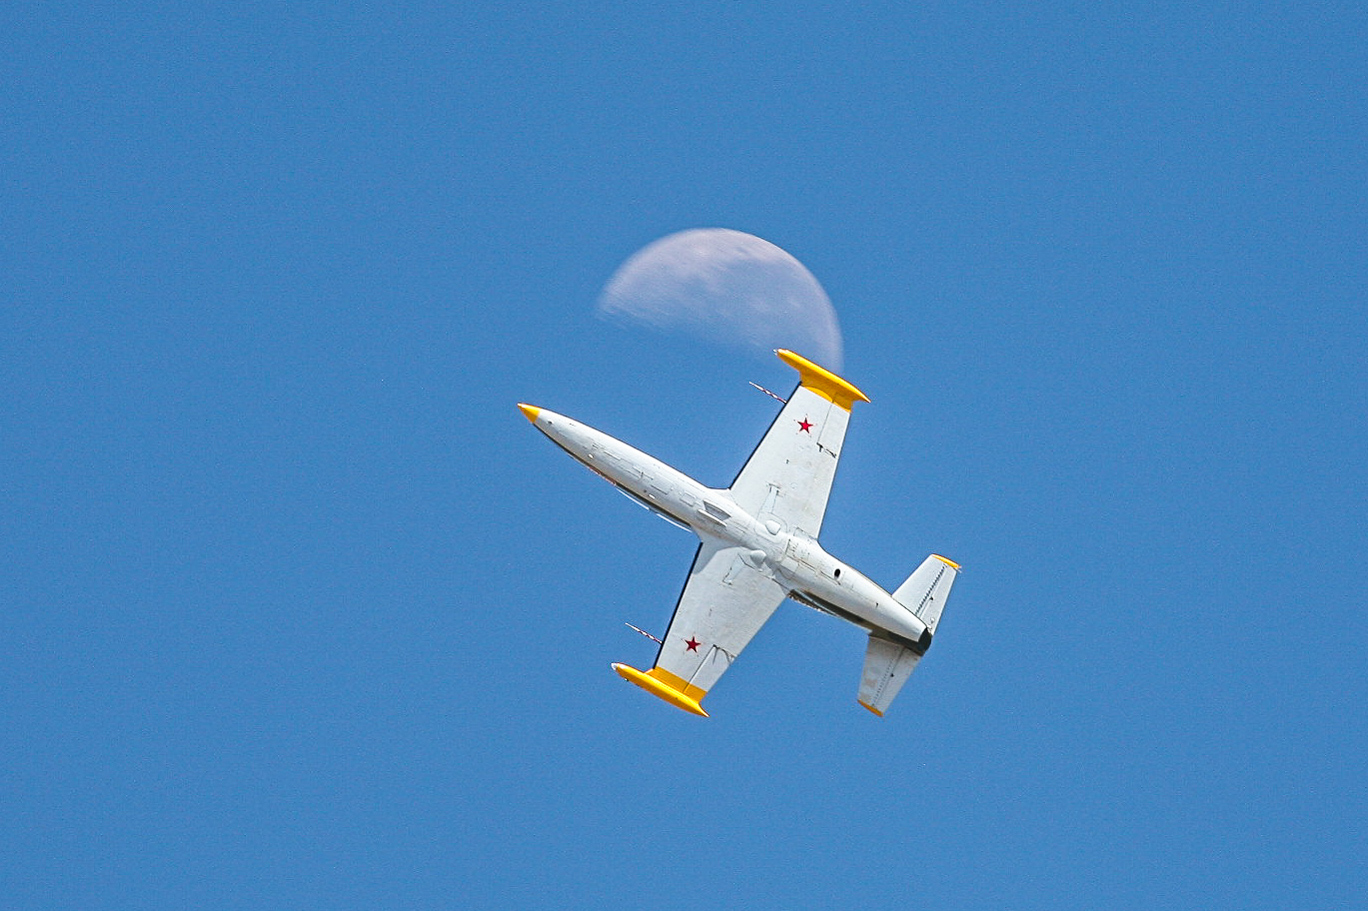 A stunning shot of the L-39 passing the moon. (photo by Phil Buckley)